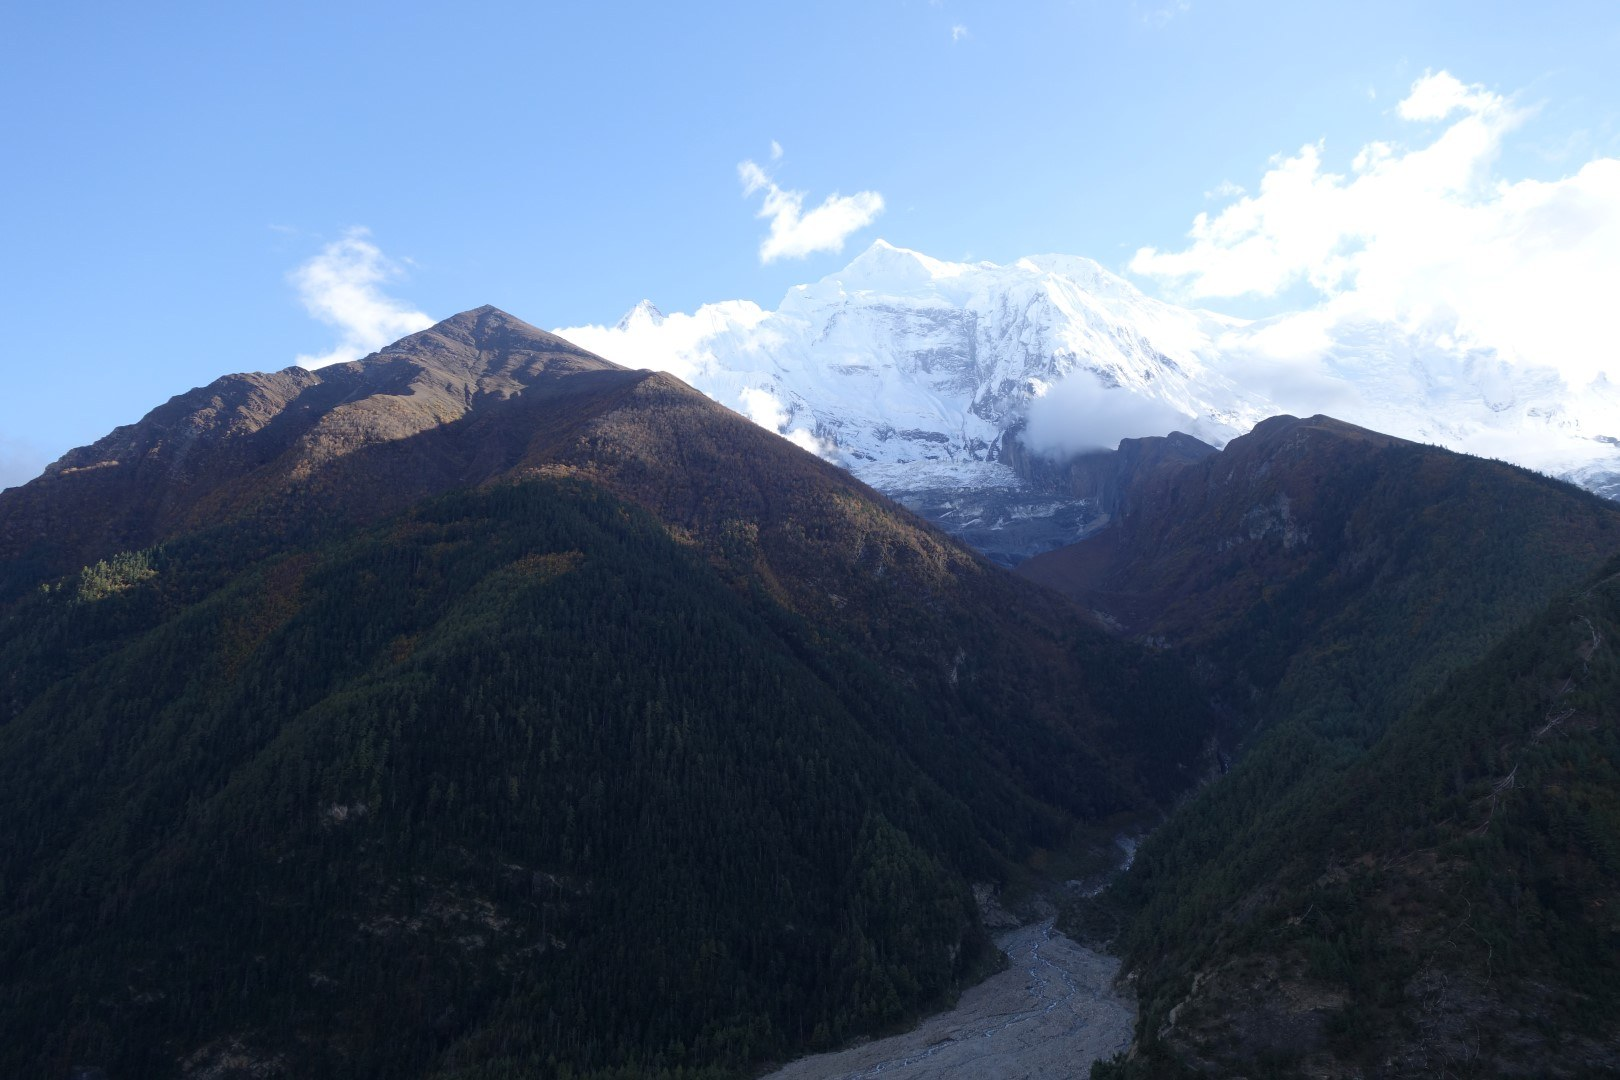 The view from our guesthouse - Annapurna Circuit route